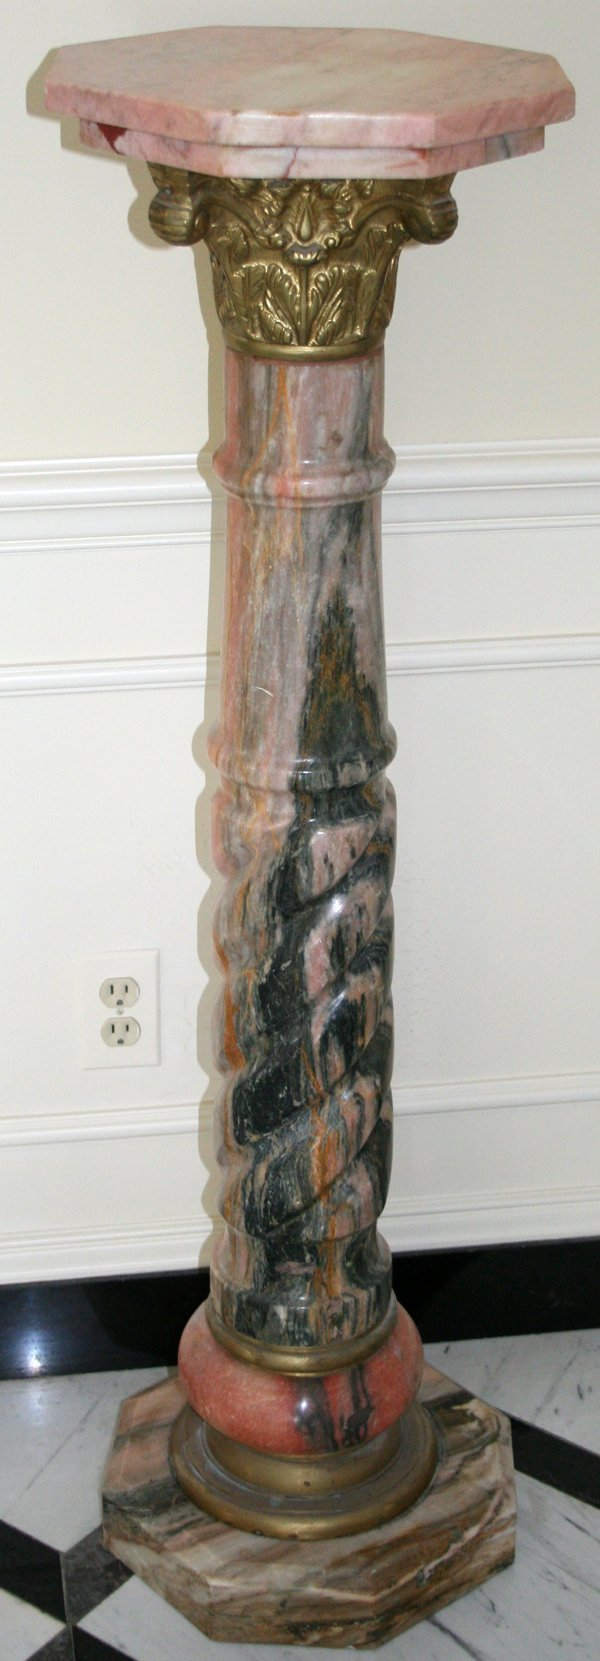 020007: PINK MARBLE AND BRONZE PEDESTAL, H 47 1/2""